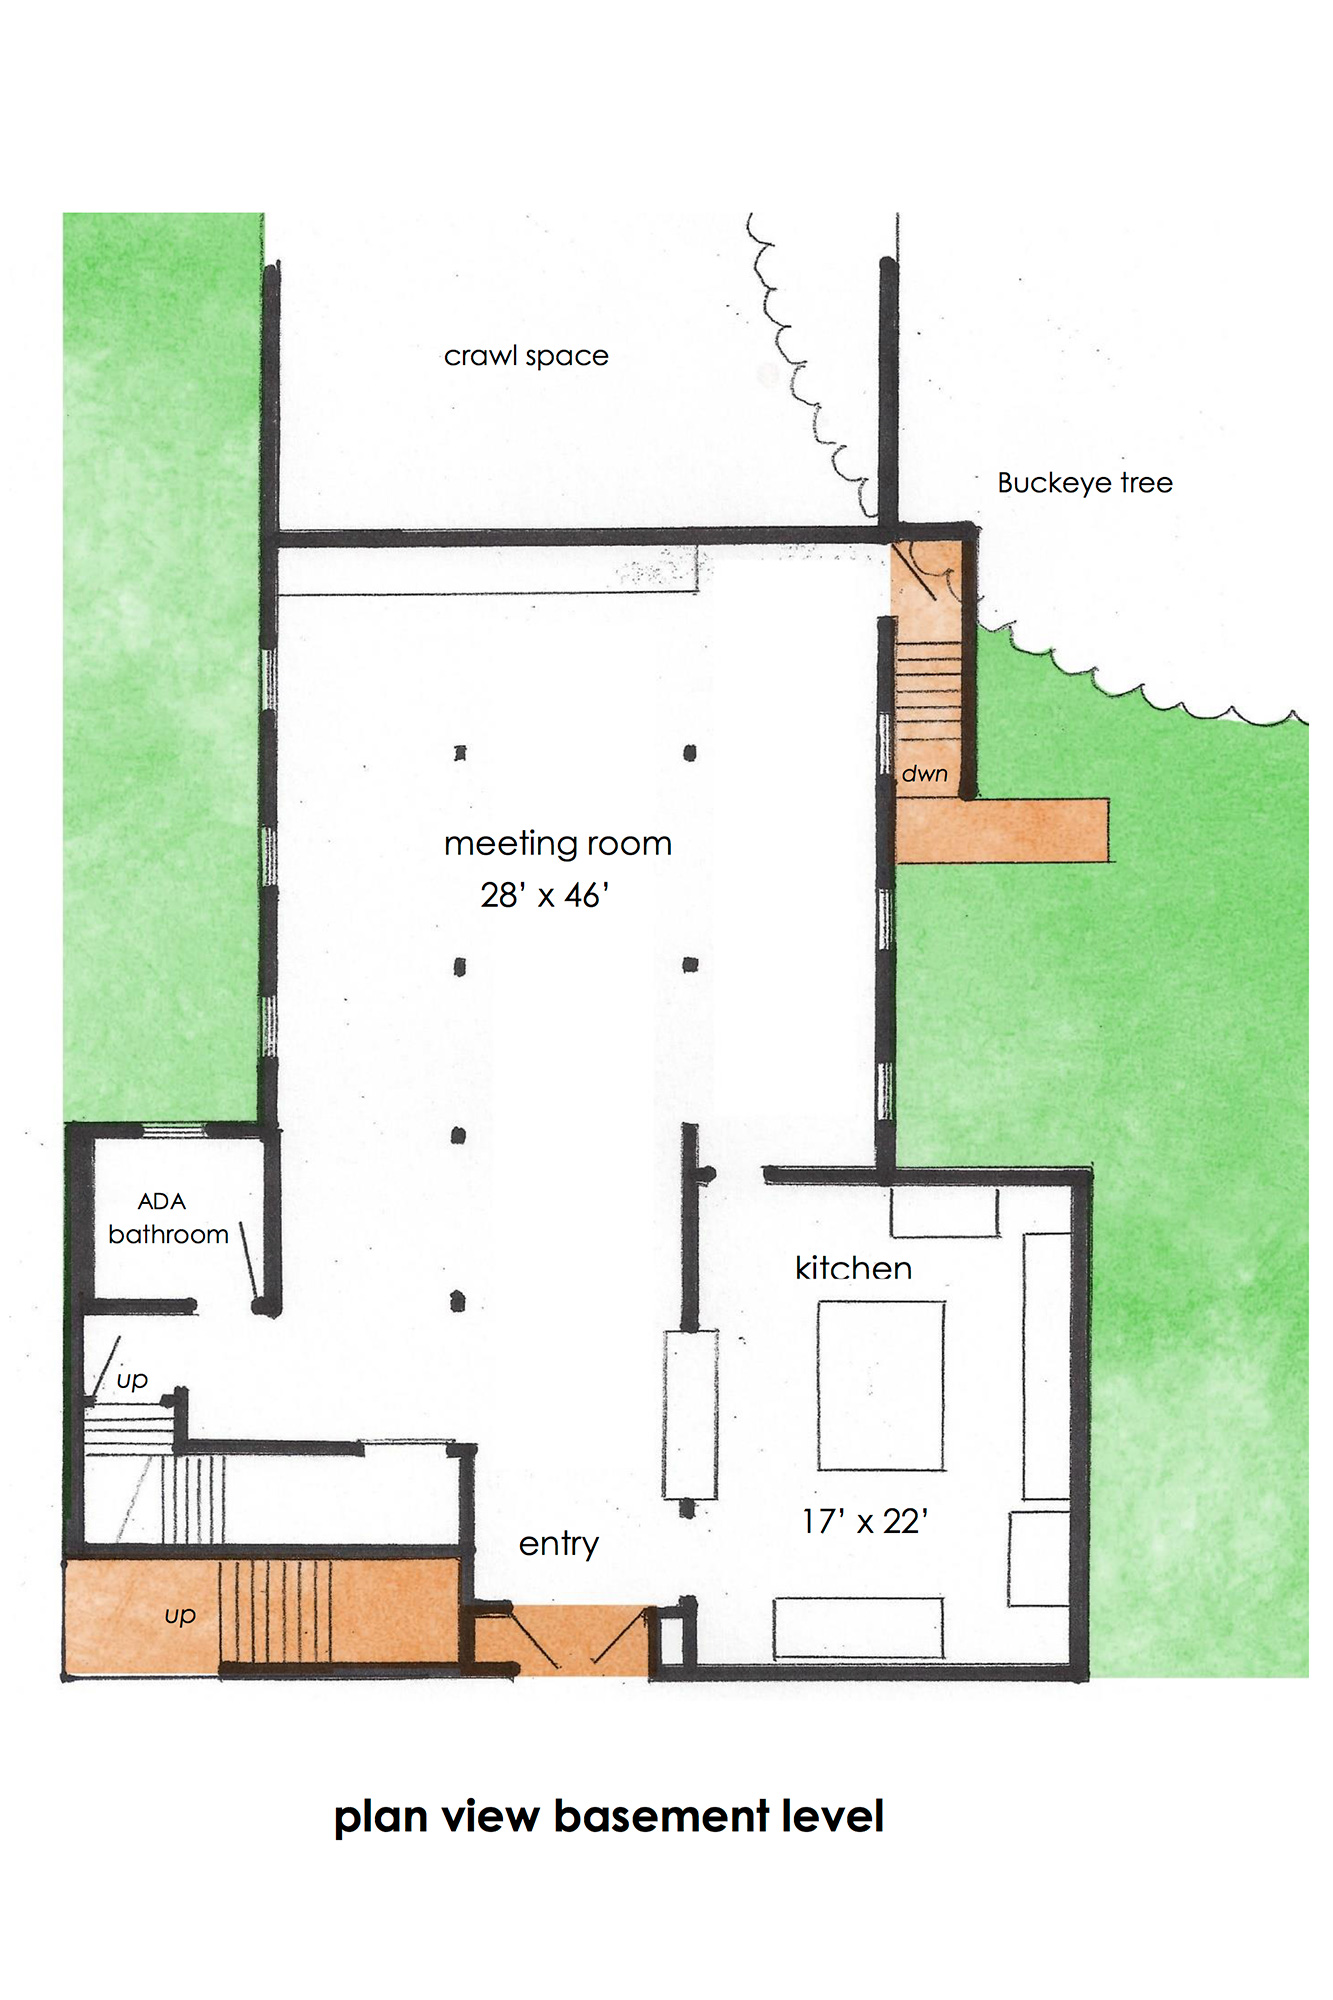 Plan View of Basement Level